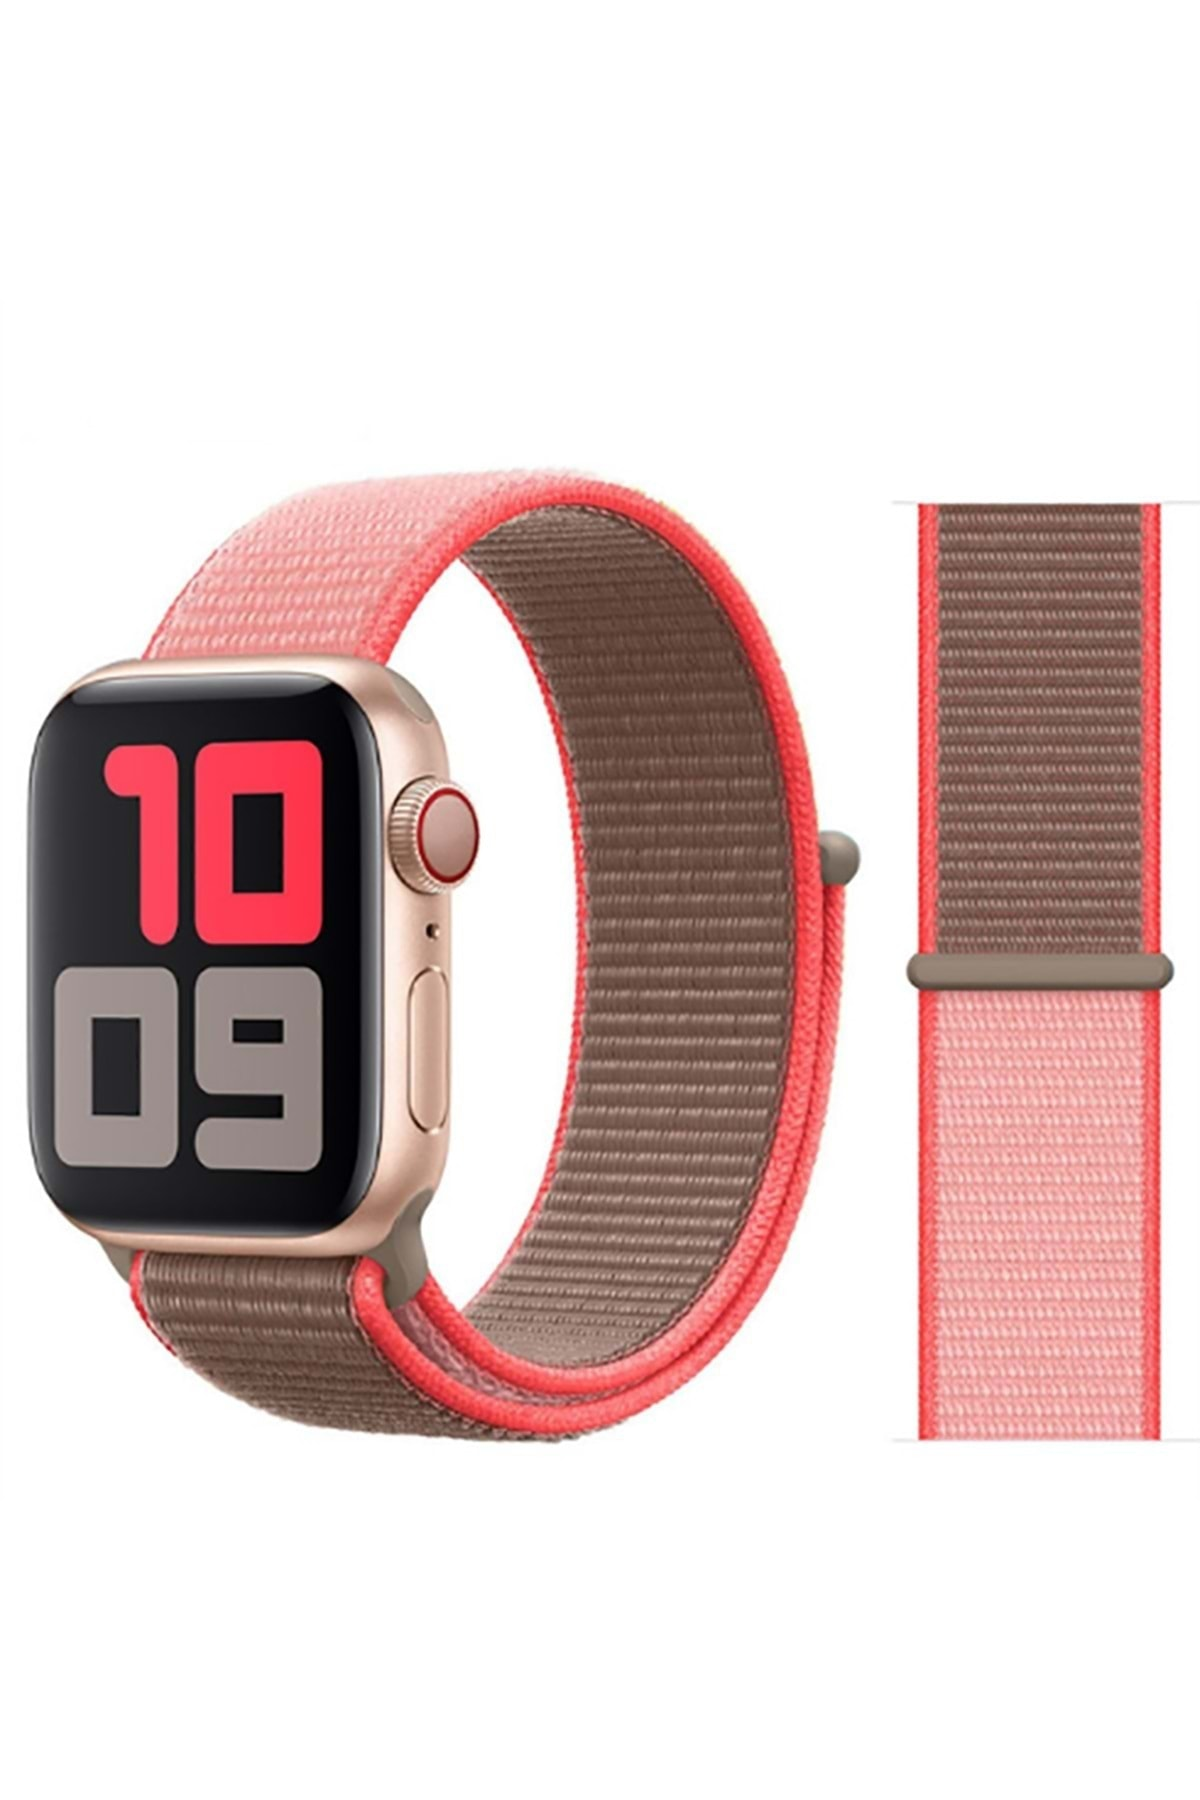 zore Apple Watch 42mm Krd-03 Hasır Kordon 1